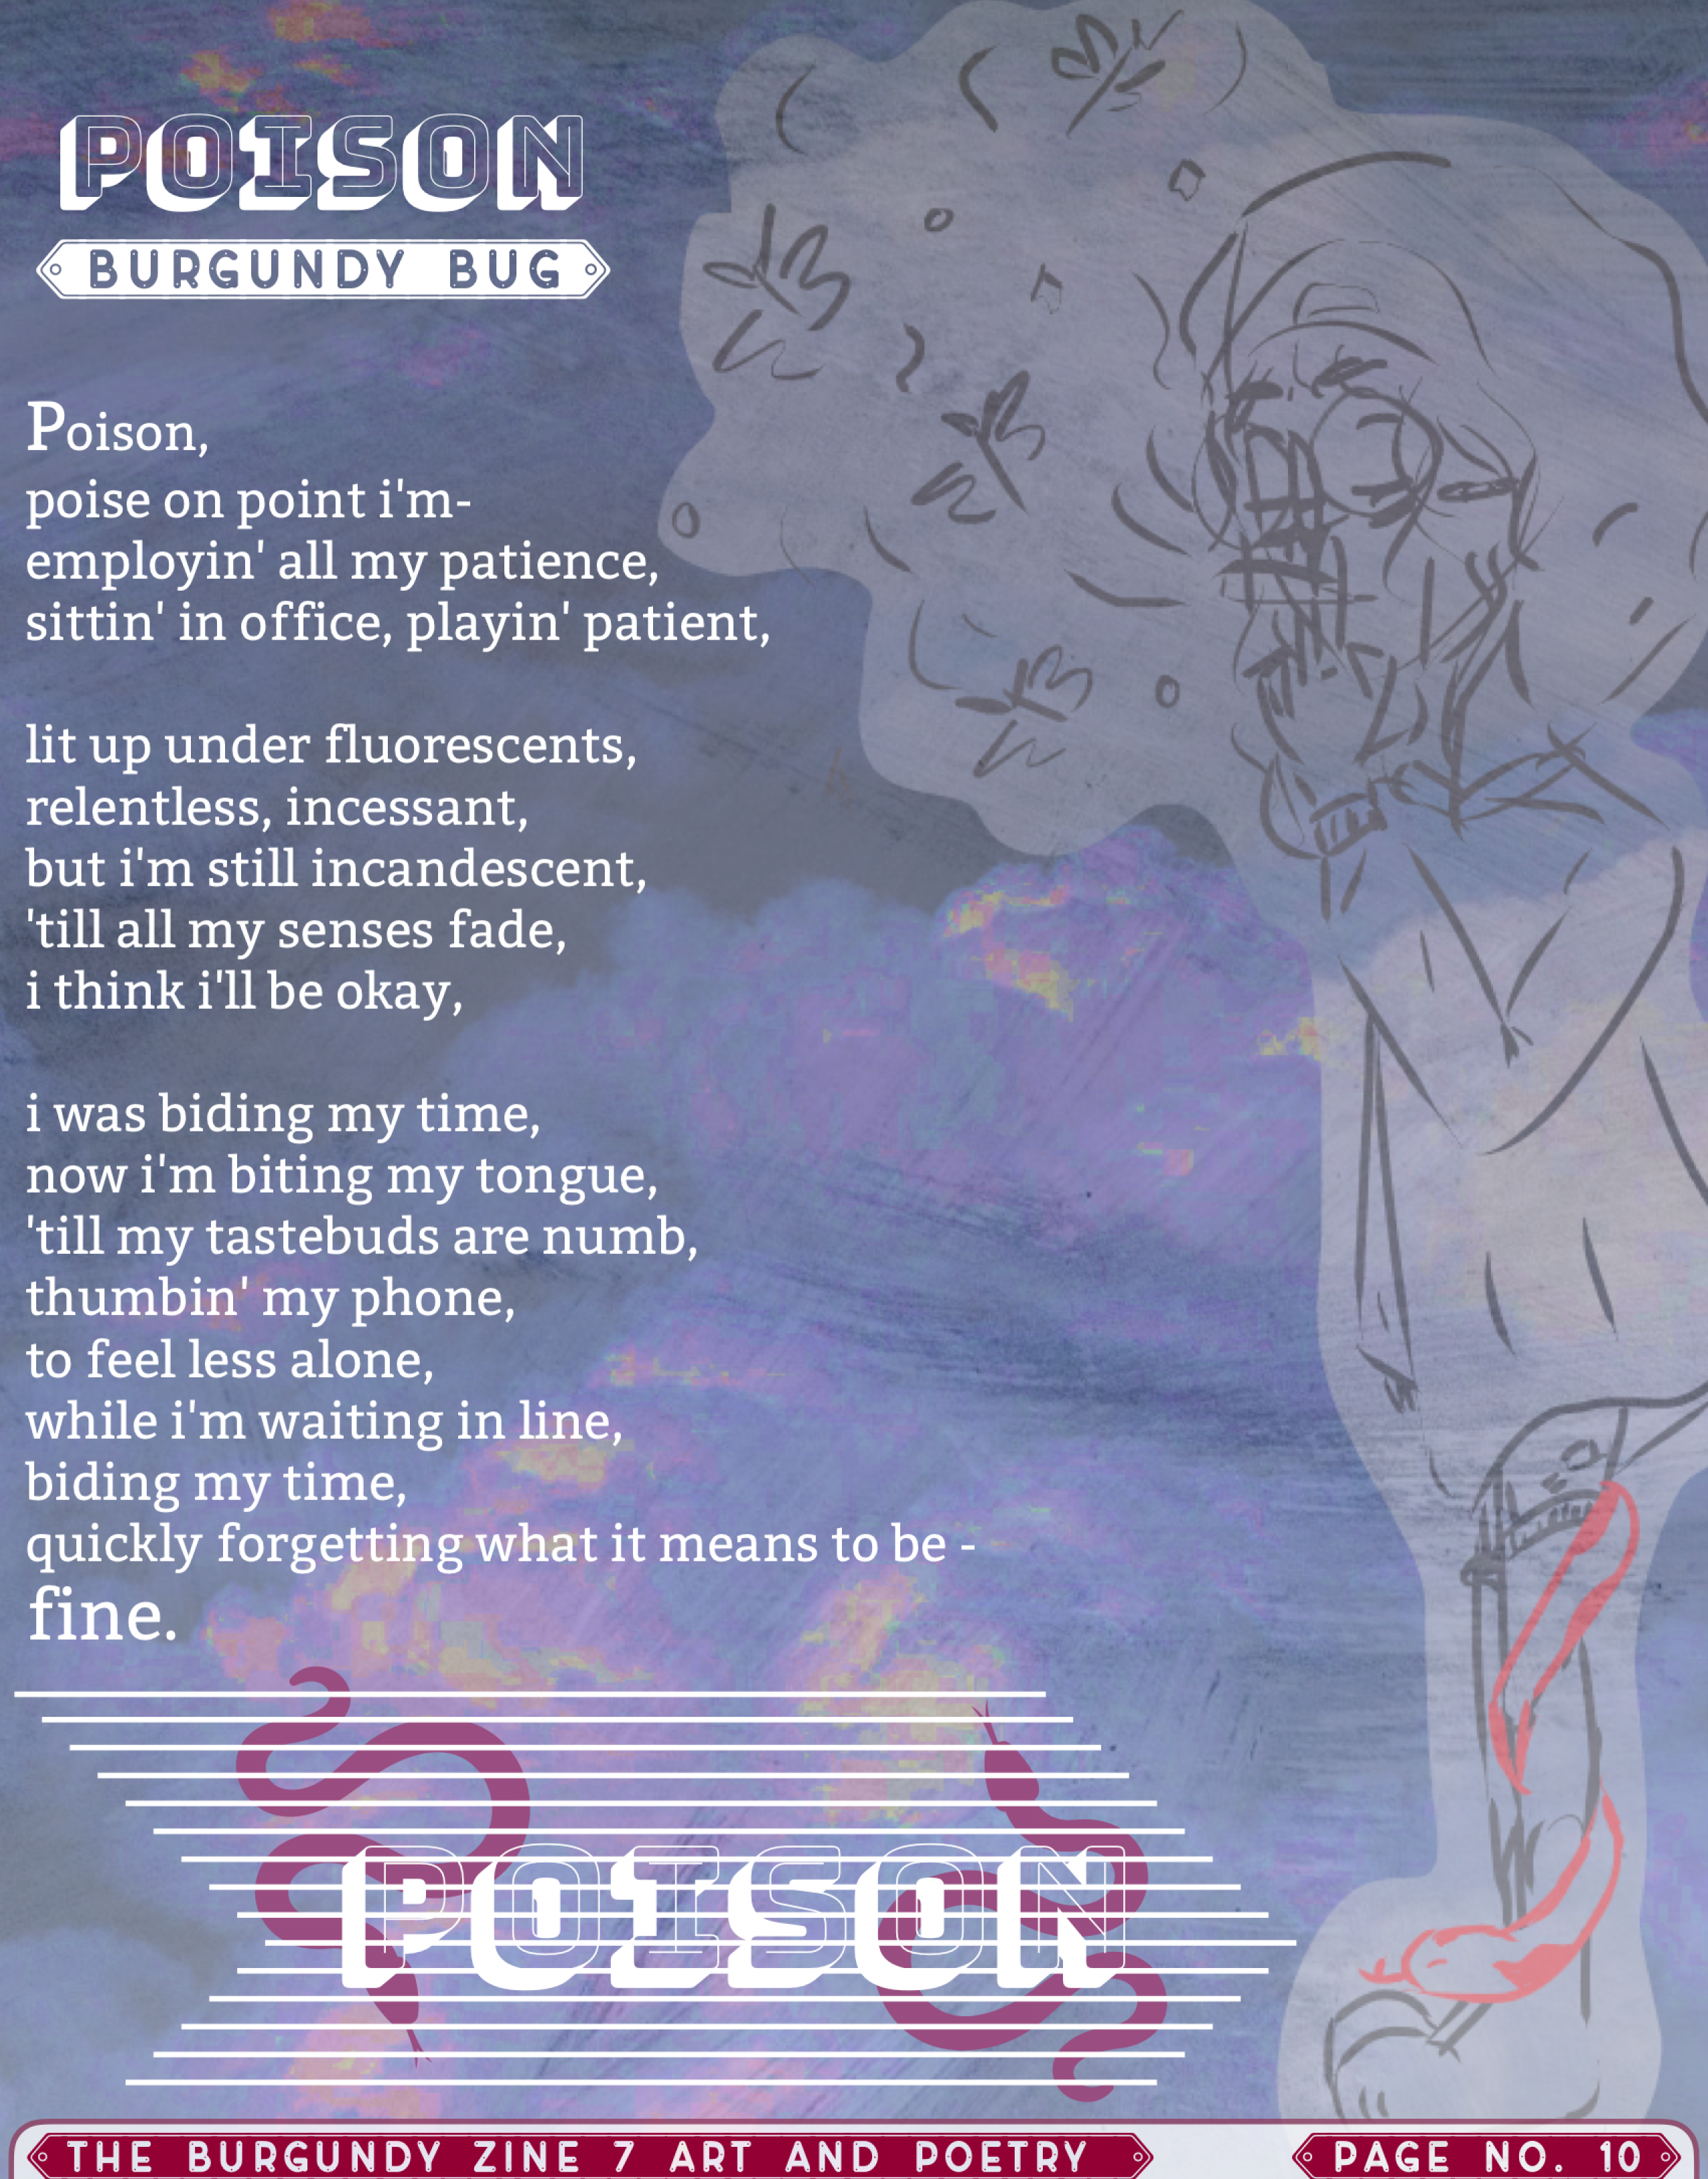 The Burgundy Zine #7 Art and Poetry 010